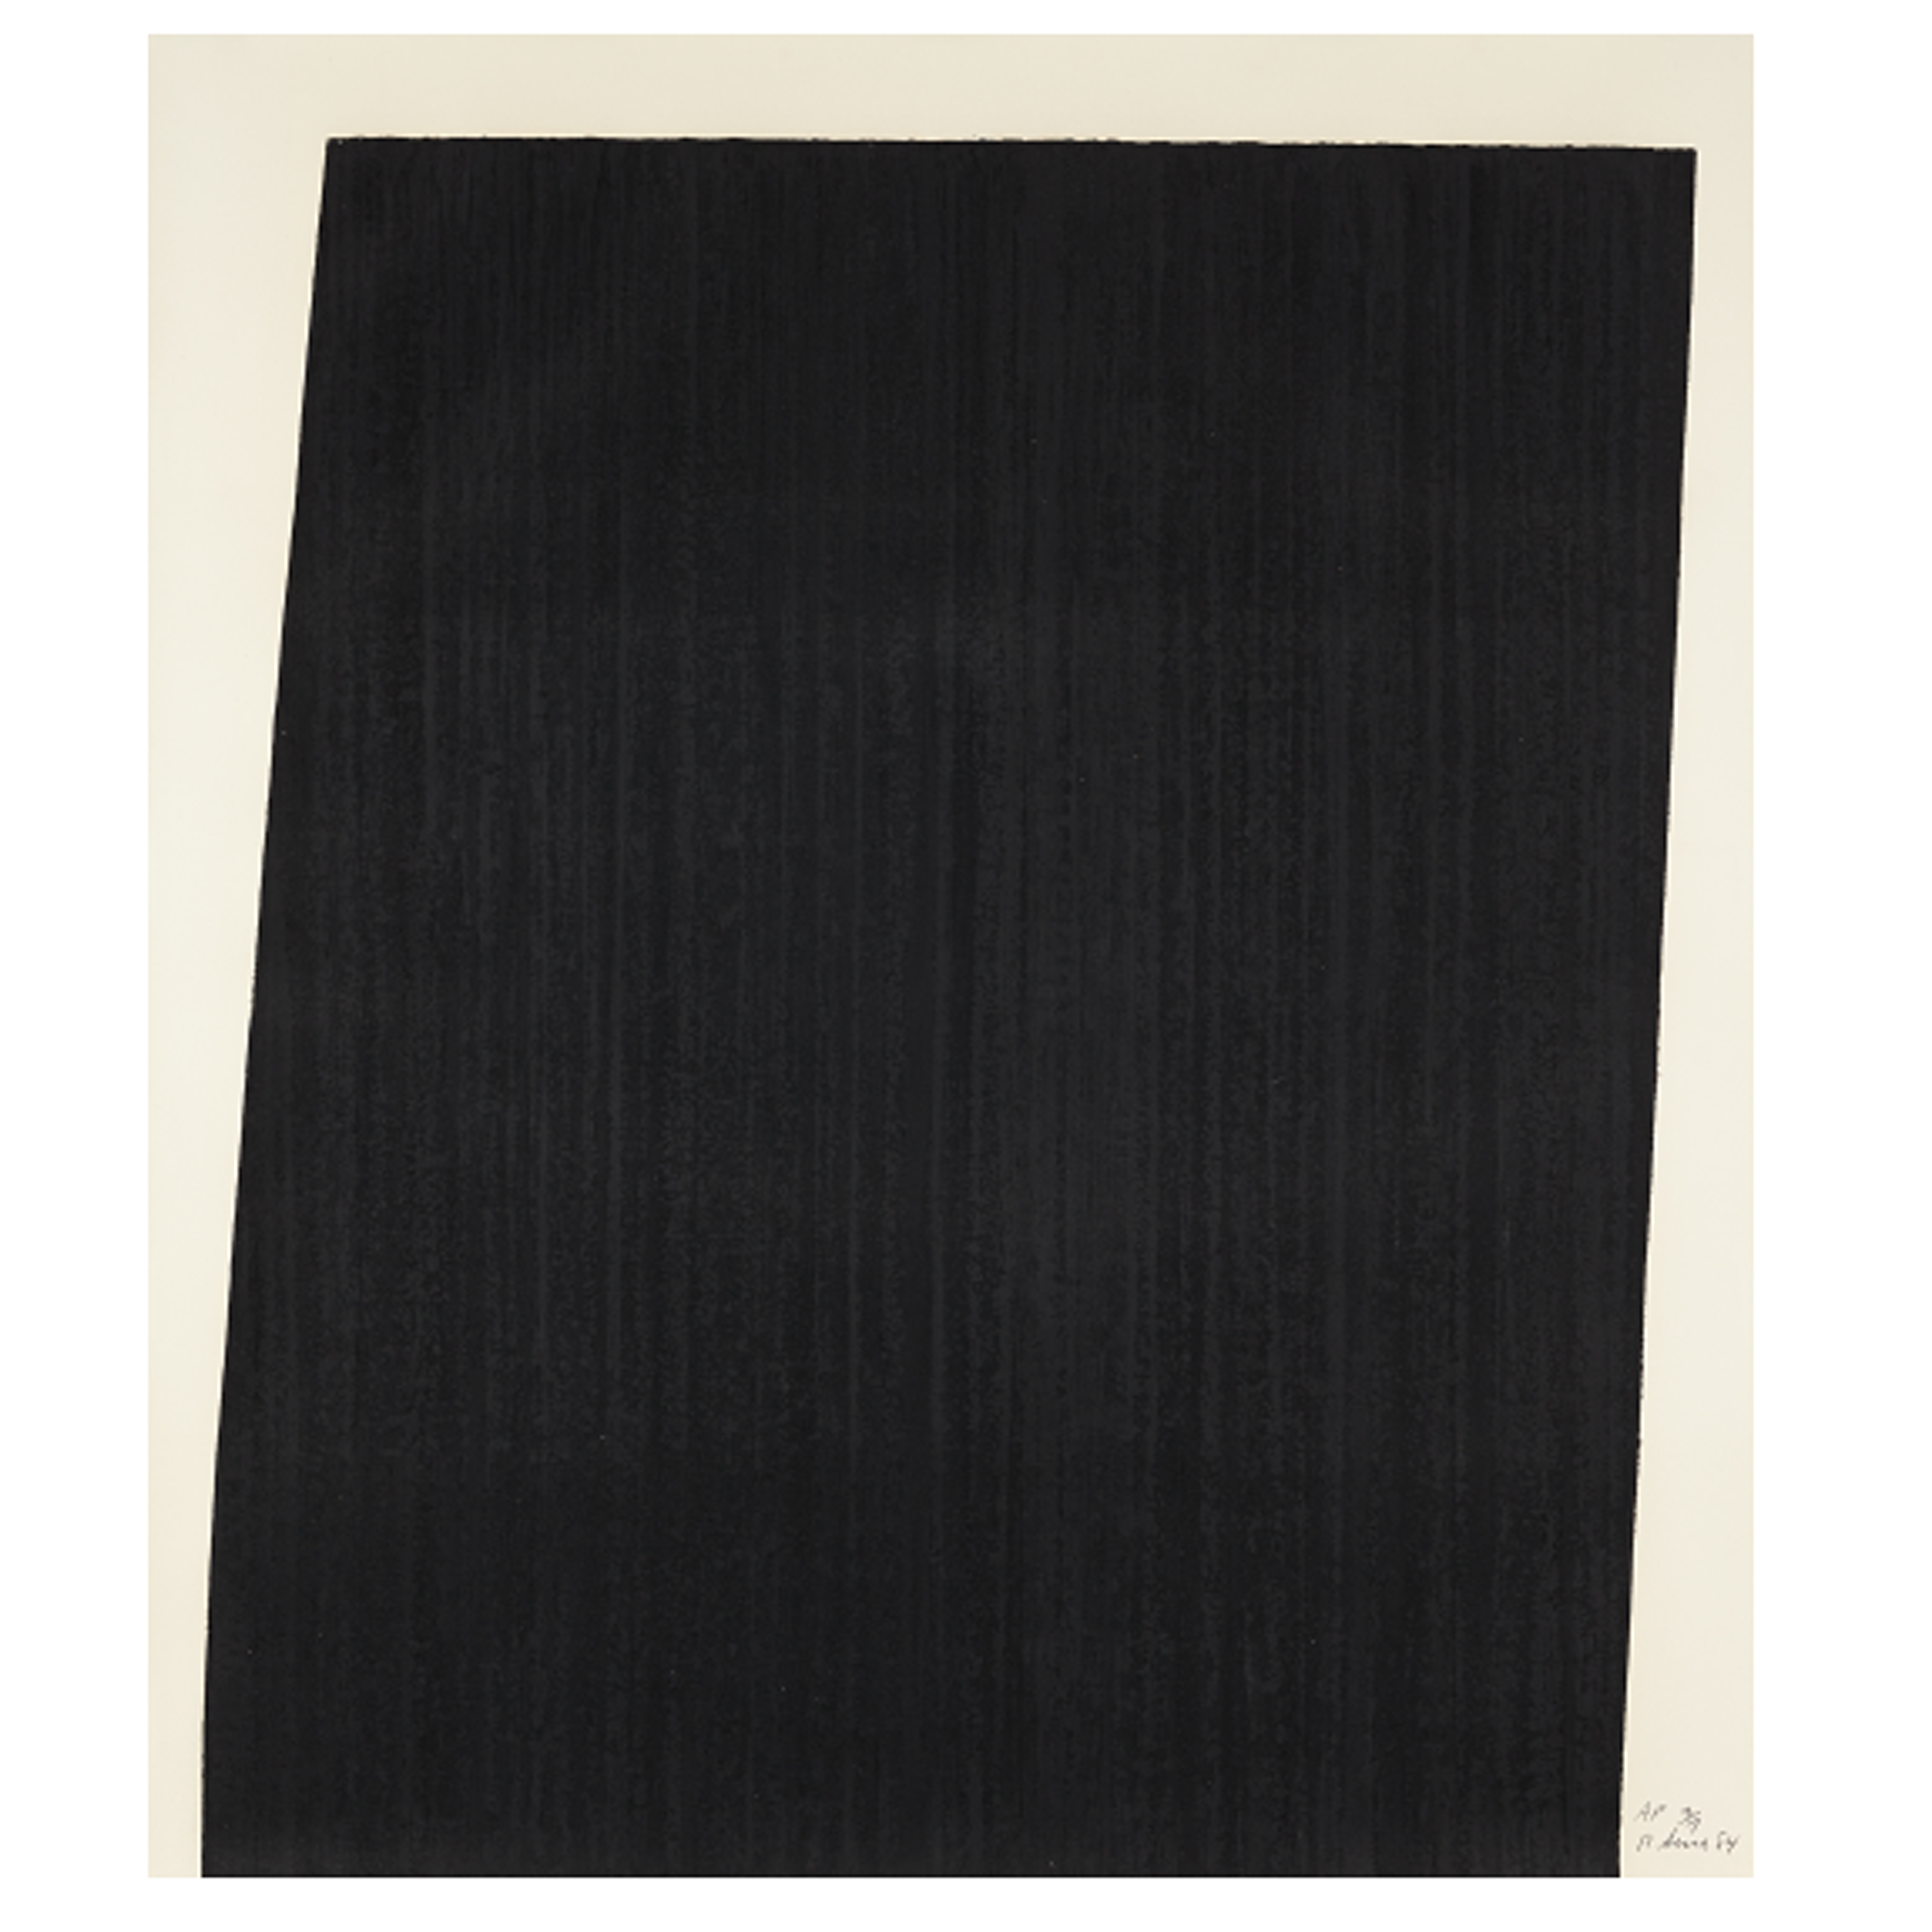 RICHARD SERRA Tujunga Blacktop, 1985 Paintstick and screenprint, on Arches Cover paper, the full sheet.png